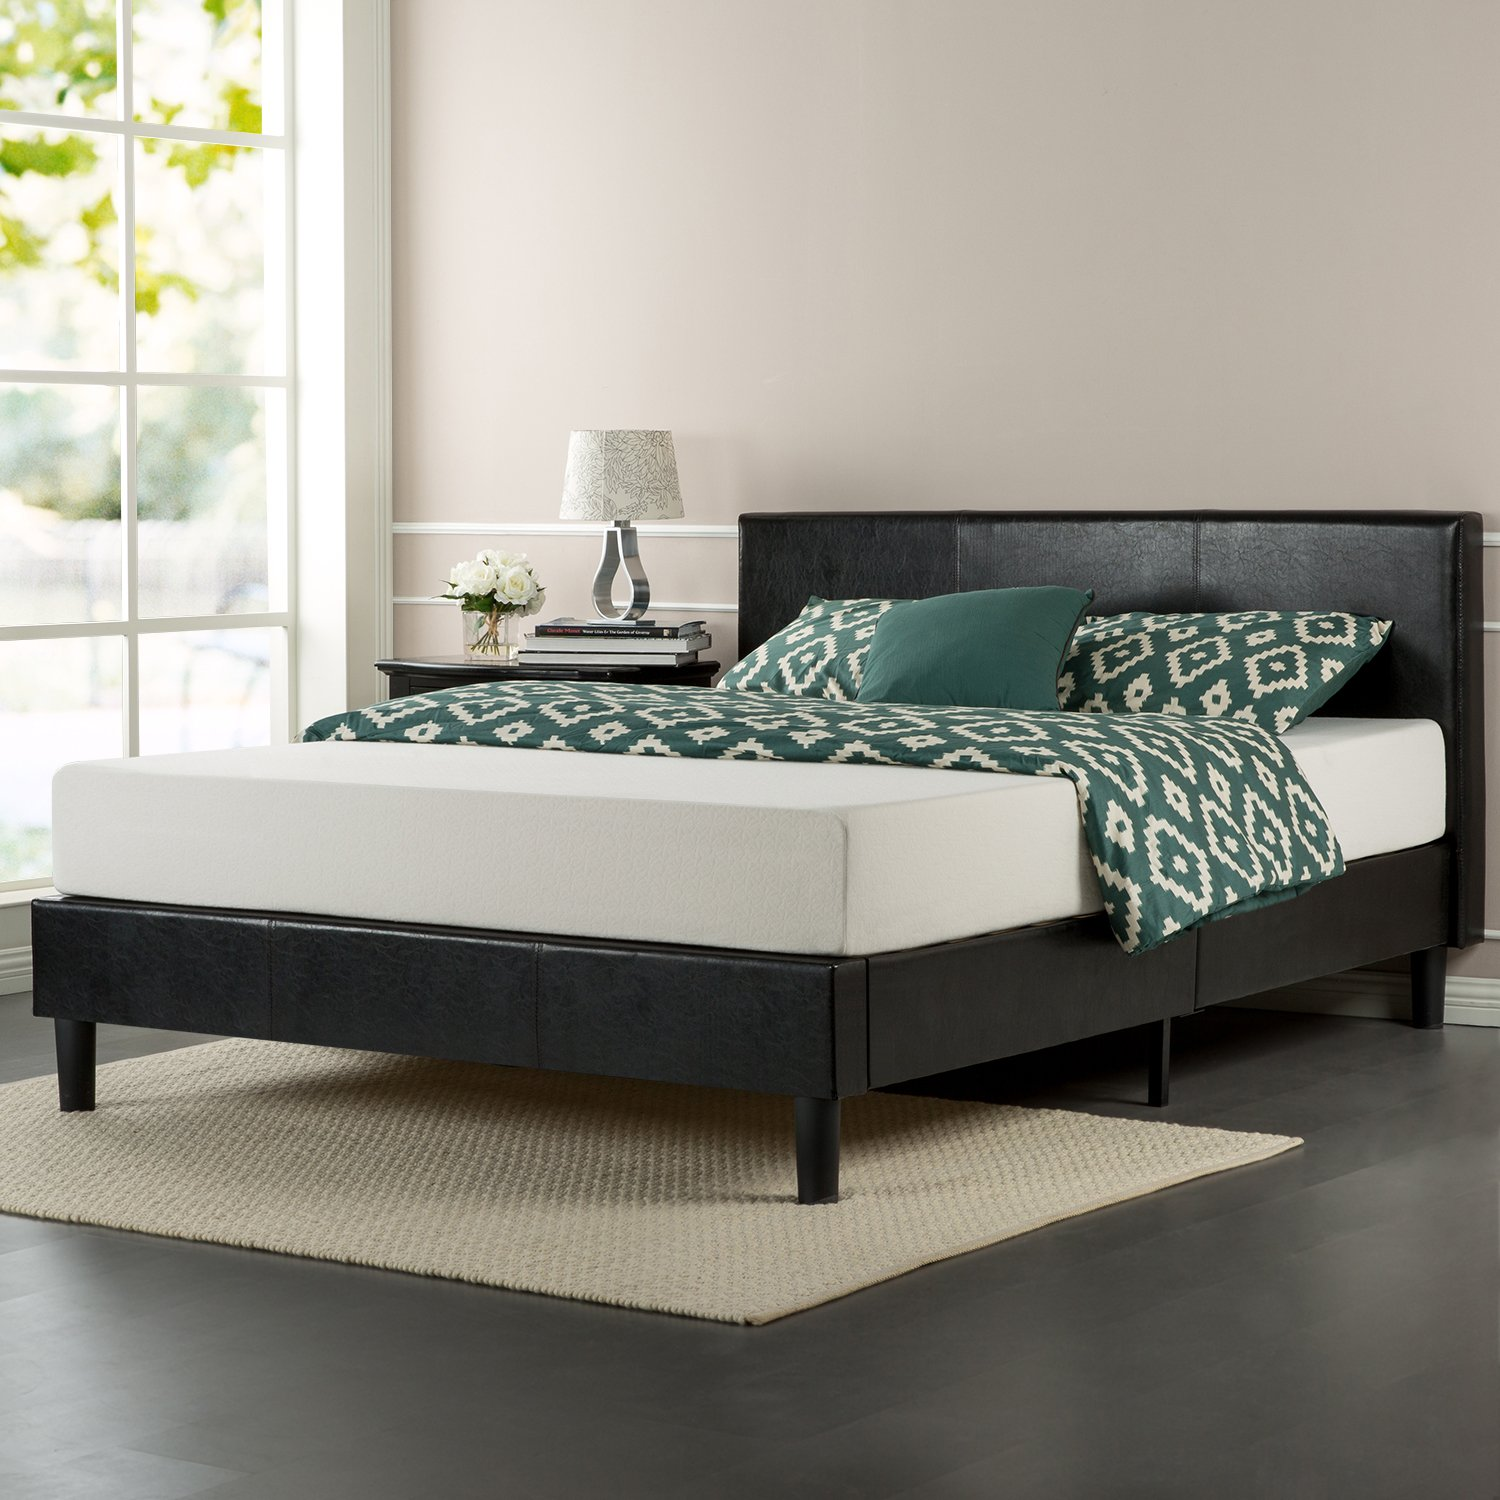 amazoncom zinus faux leather upholstered platform bed with wooden slats queen kitchen u0026 dining